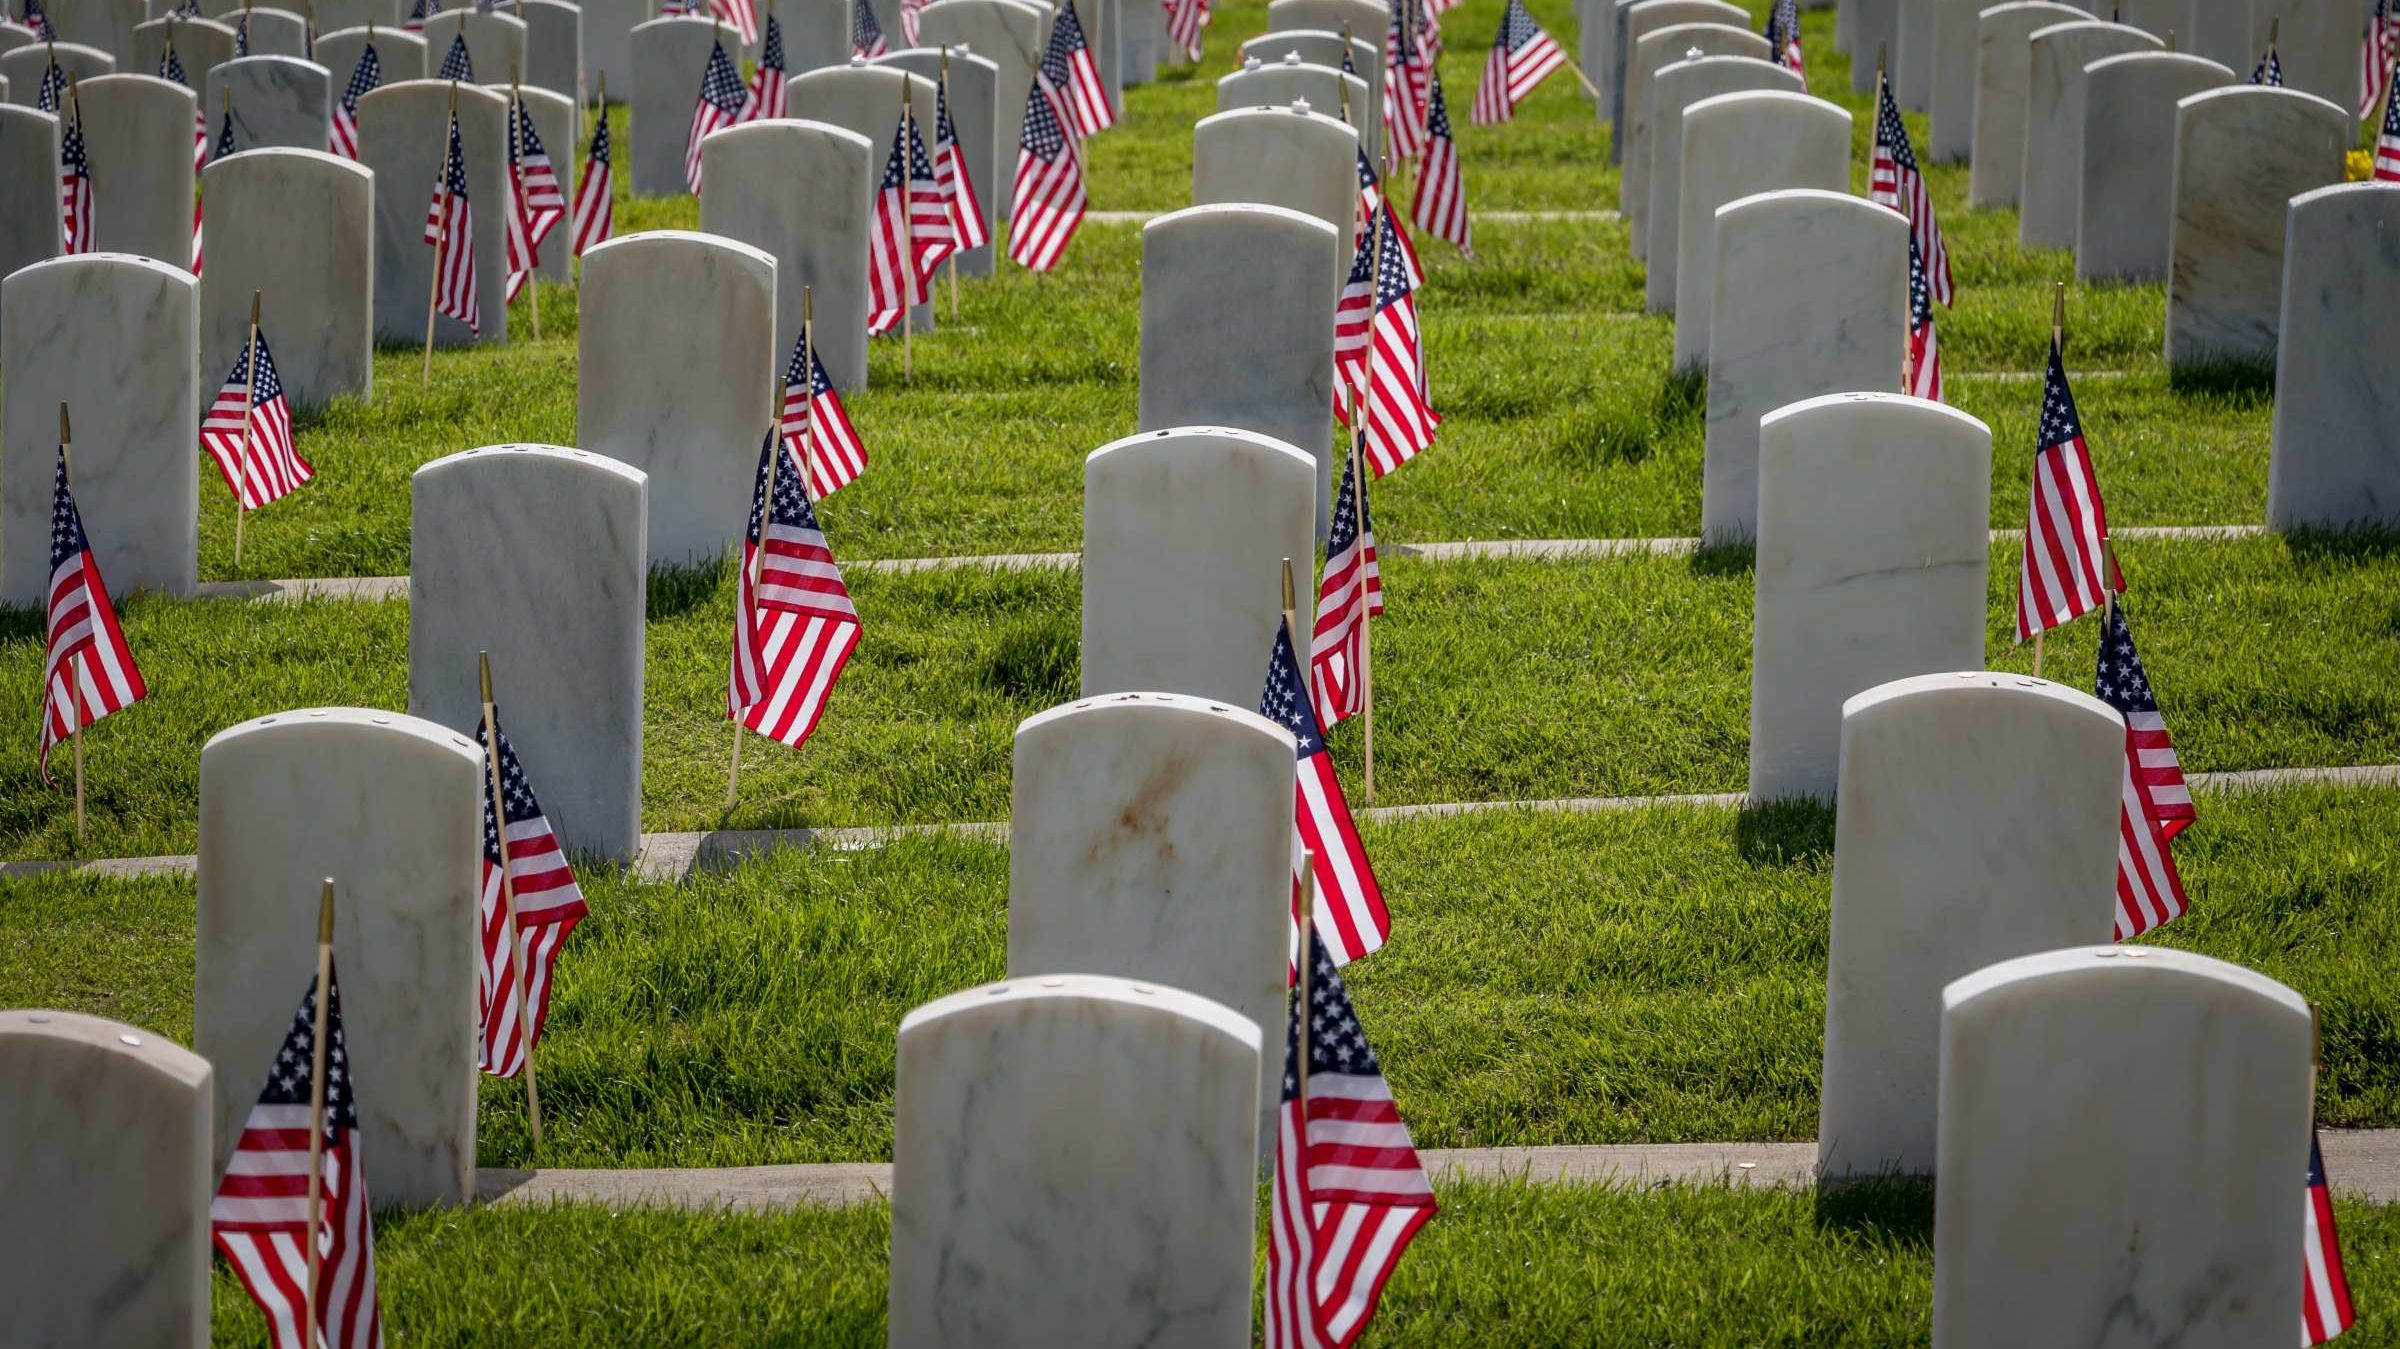 10 Things to Remember About Memorial Day